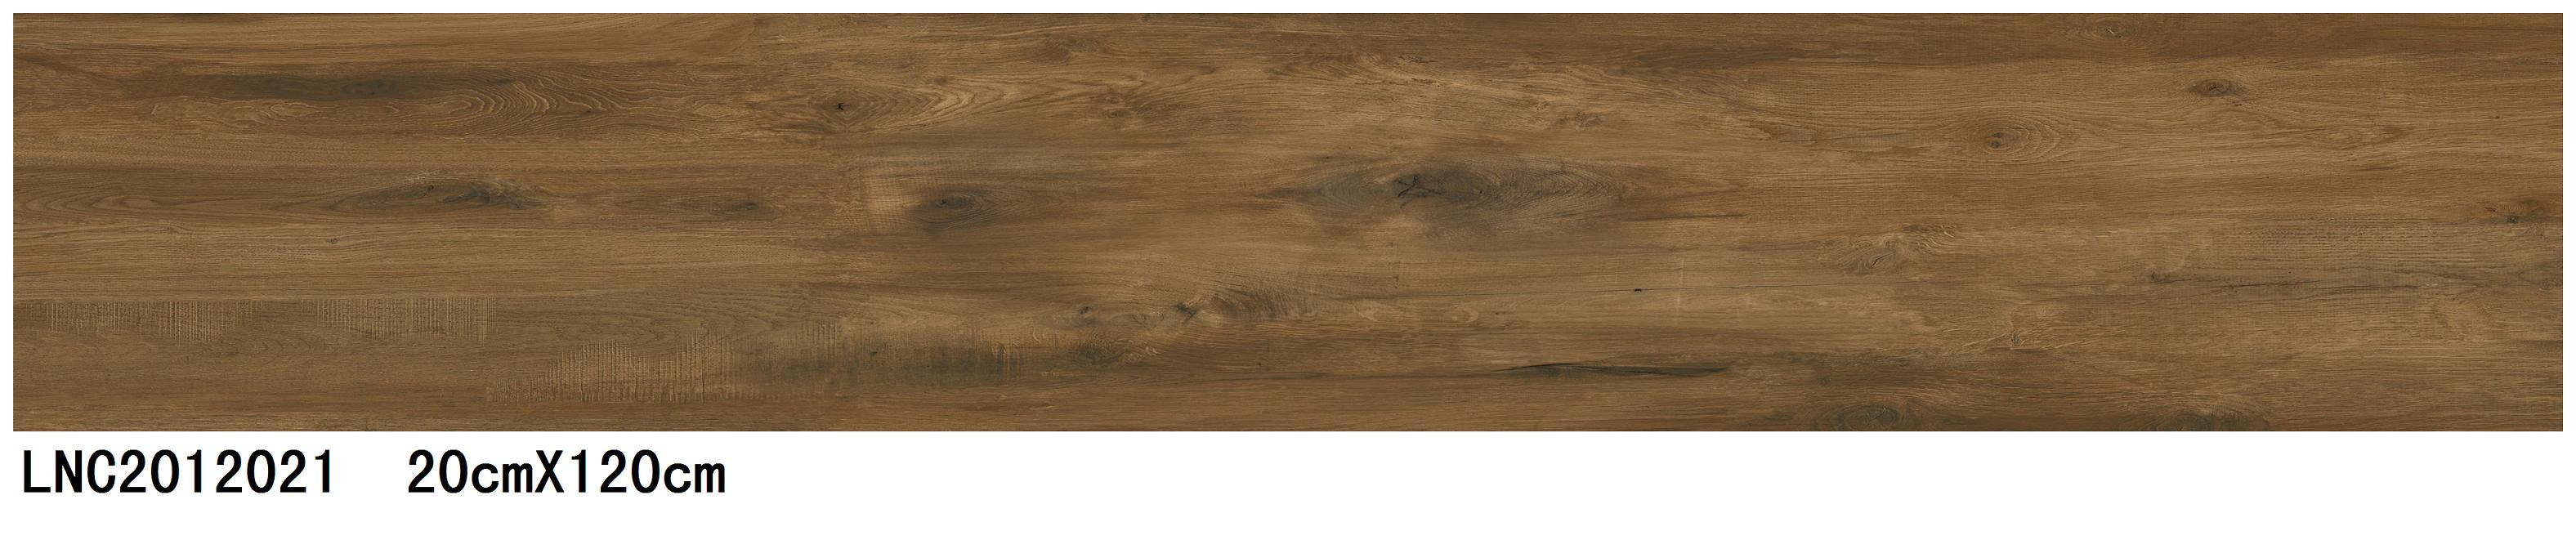 High Quality Building Material Porcelain Wood Tile Floor Tile Lnc2012021 Brown